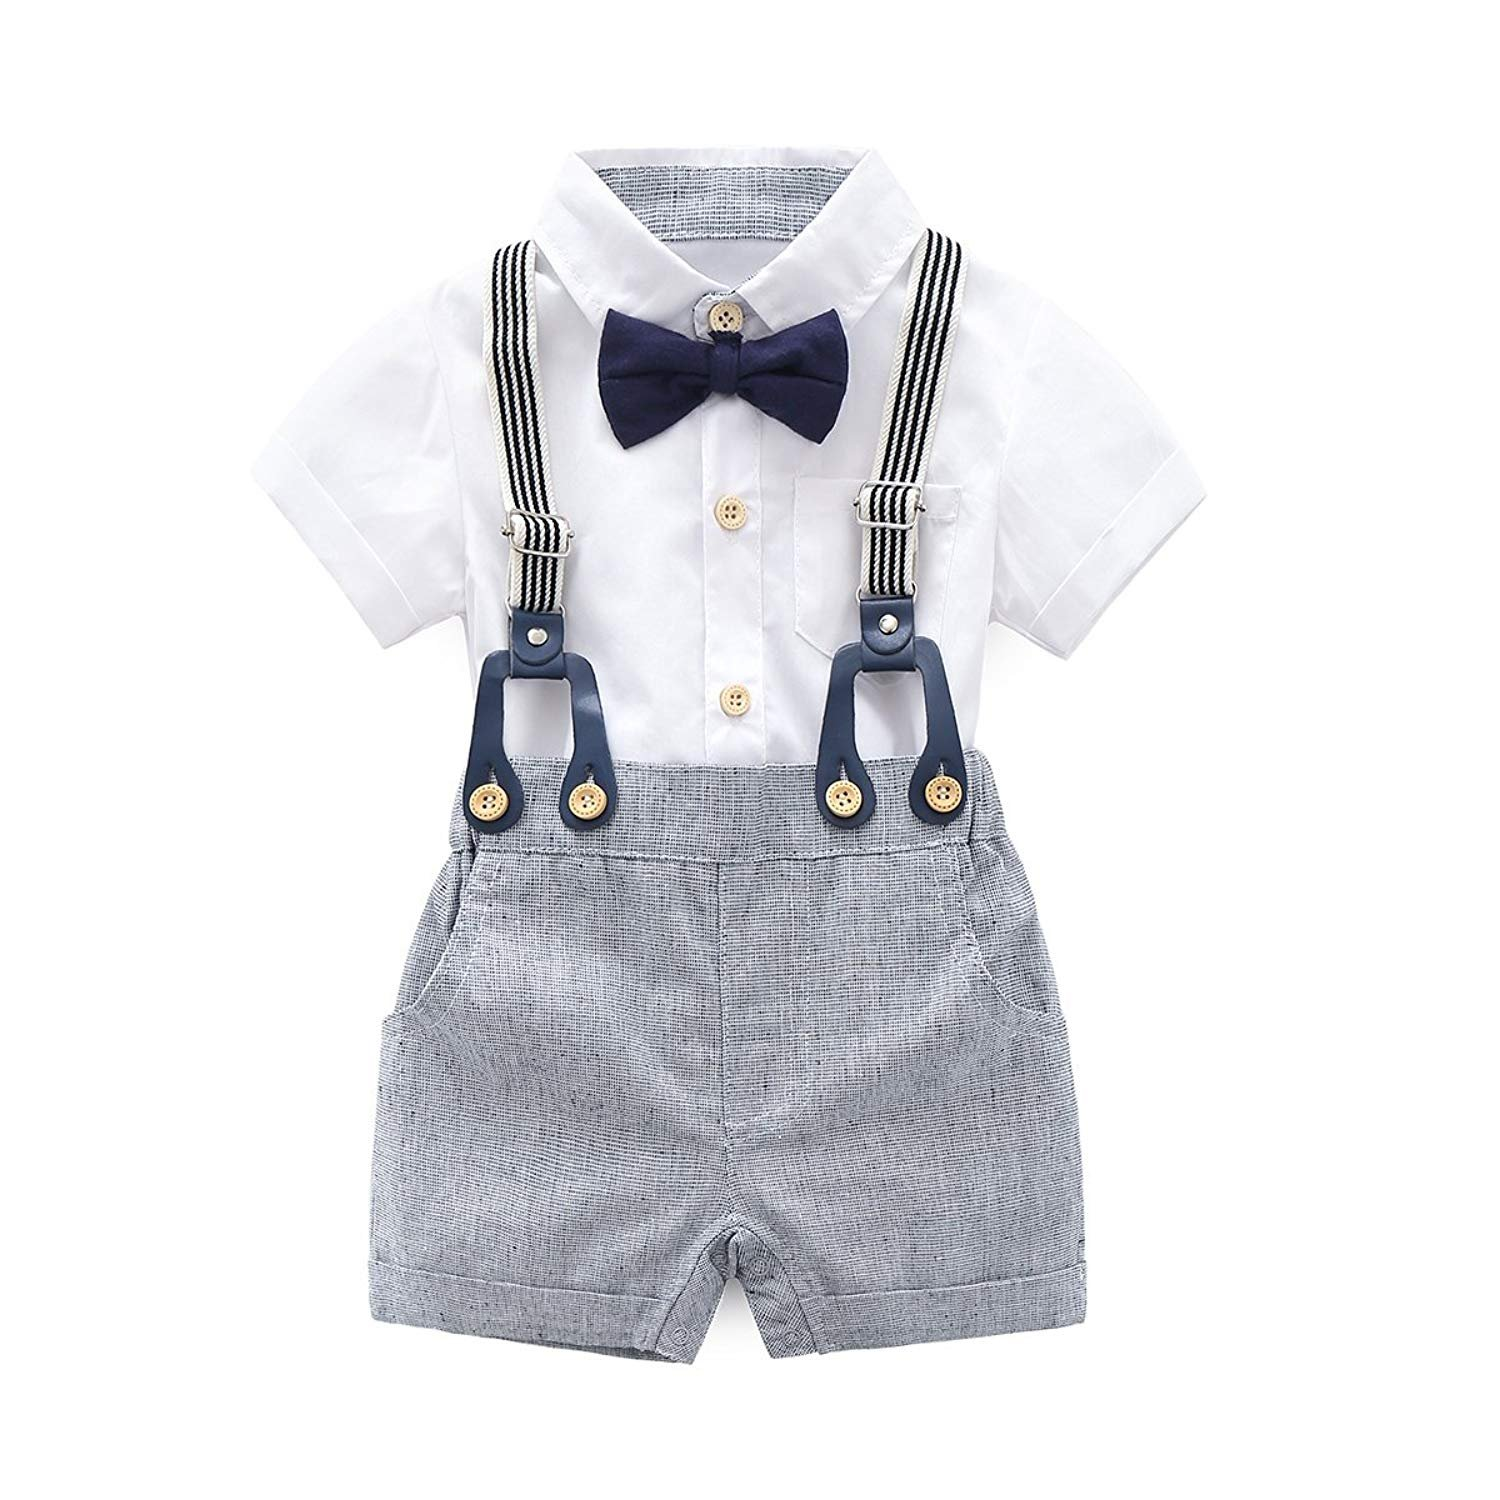 KiKibaby Baby Boys Gentleman White Outfits Suits, Infant Short Sleeve Shirt+Bib Pants+Bow Tie Overalls Clothes Set KTZ-81